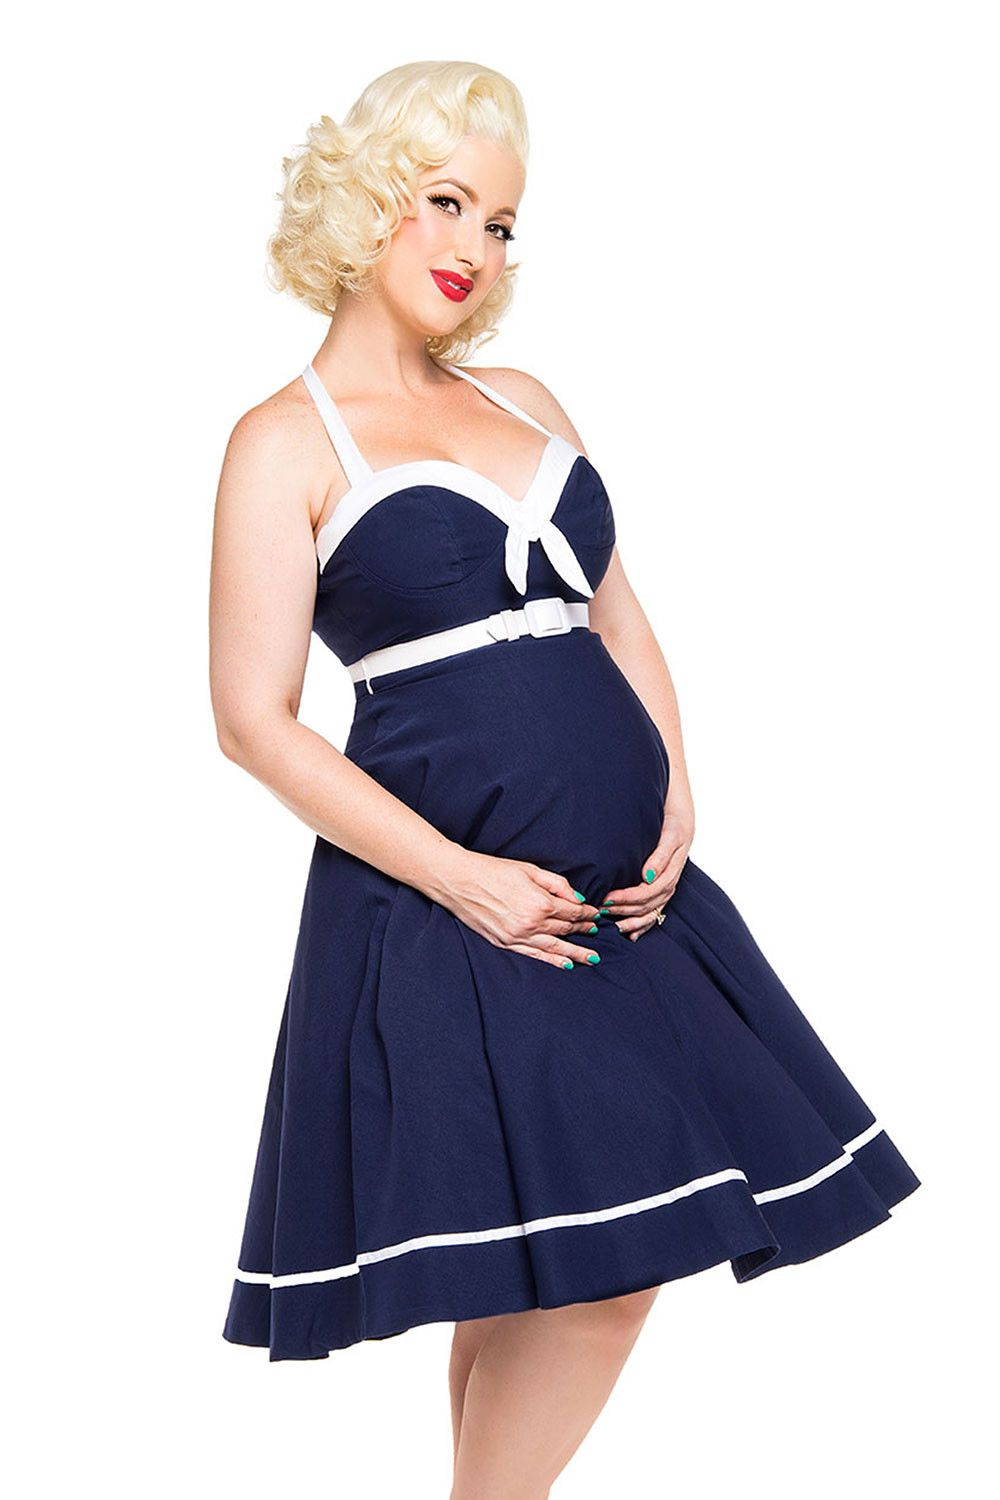 7391065c3e634 Pinup Couture- Sailor Swing Dress in Navy with White Trim - Maternity  Friendly | Pinup Girl Clothing